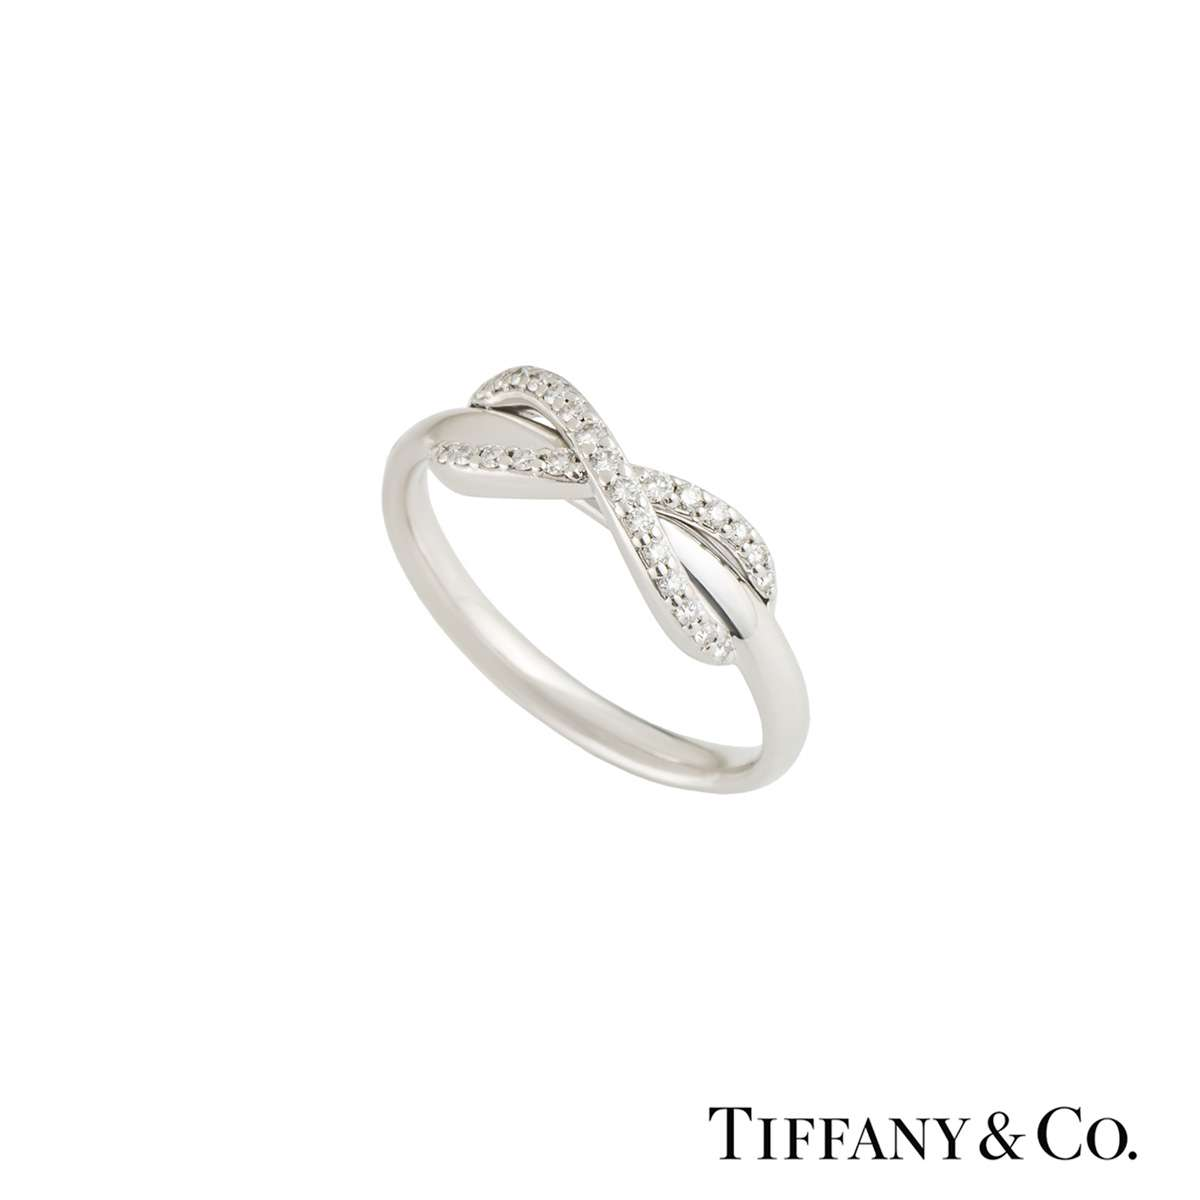 diamonds models infiniti stl jewelry with rings infinity model print ring tiffany